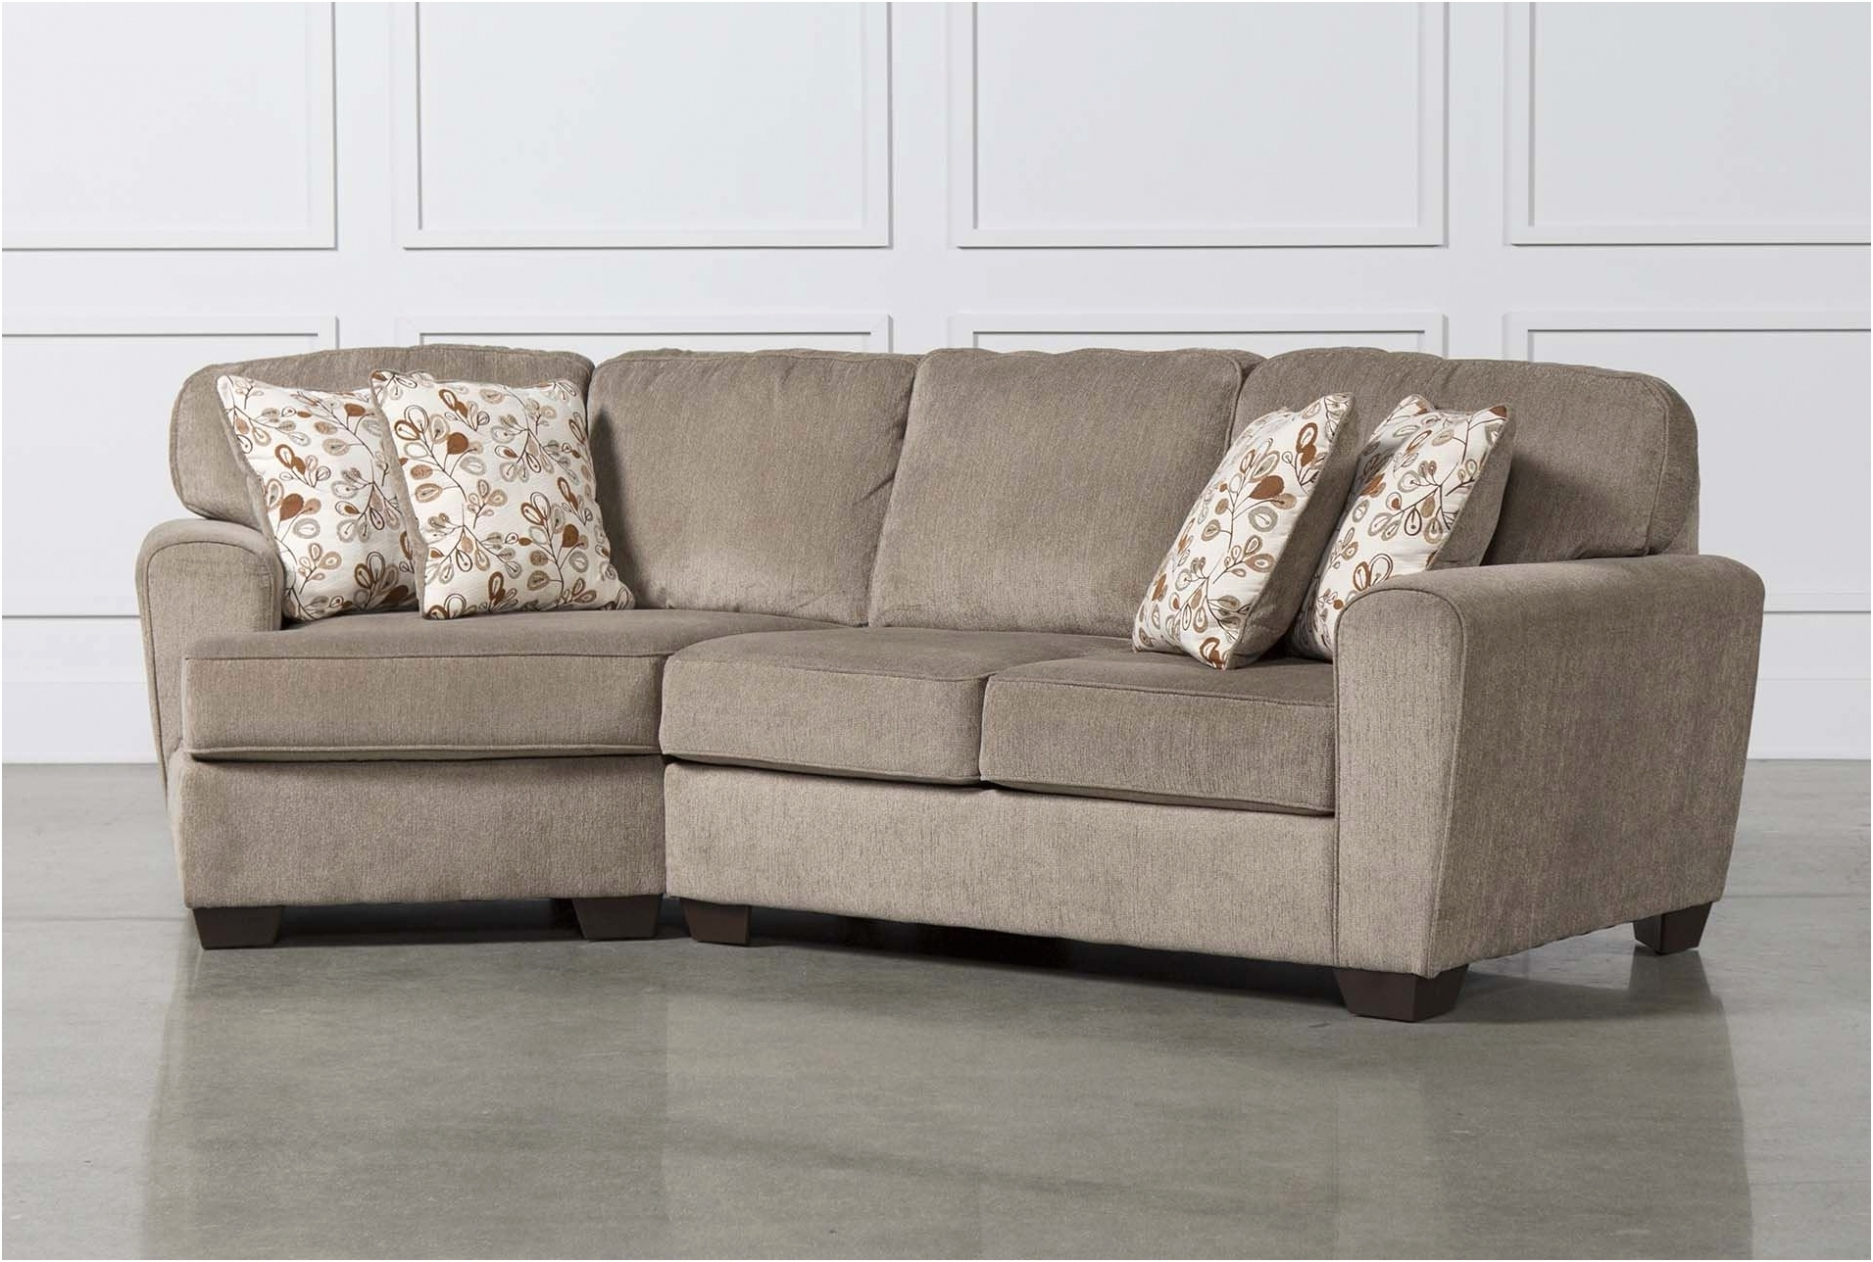 Living Spaces Sectional Sofa Bed – Sofa Design Ideas For Aquarius Light Grey 2 Piece Sectionals With Laf Chaise (Image 12 of 25)